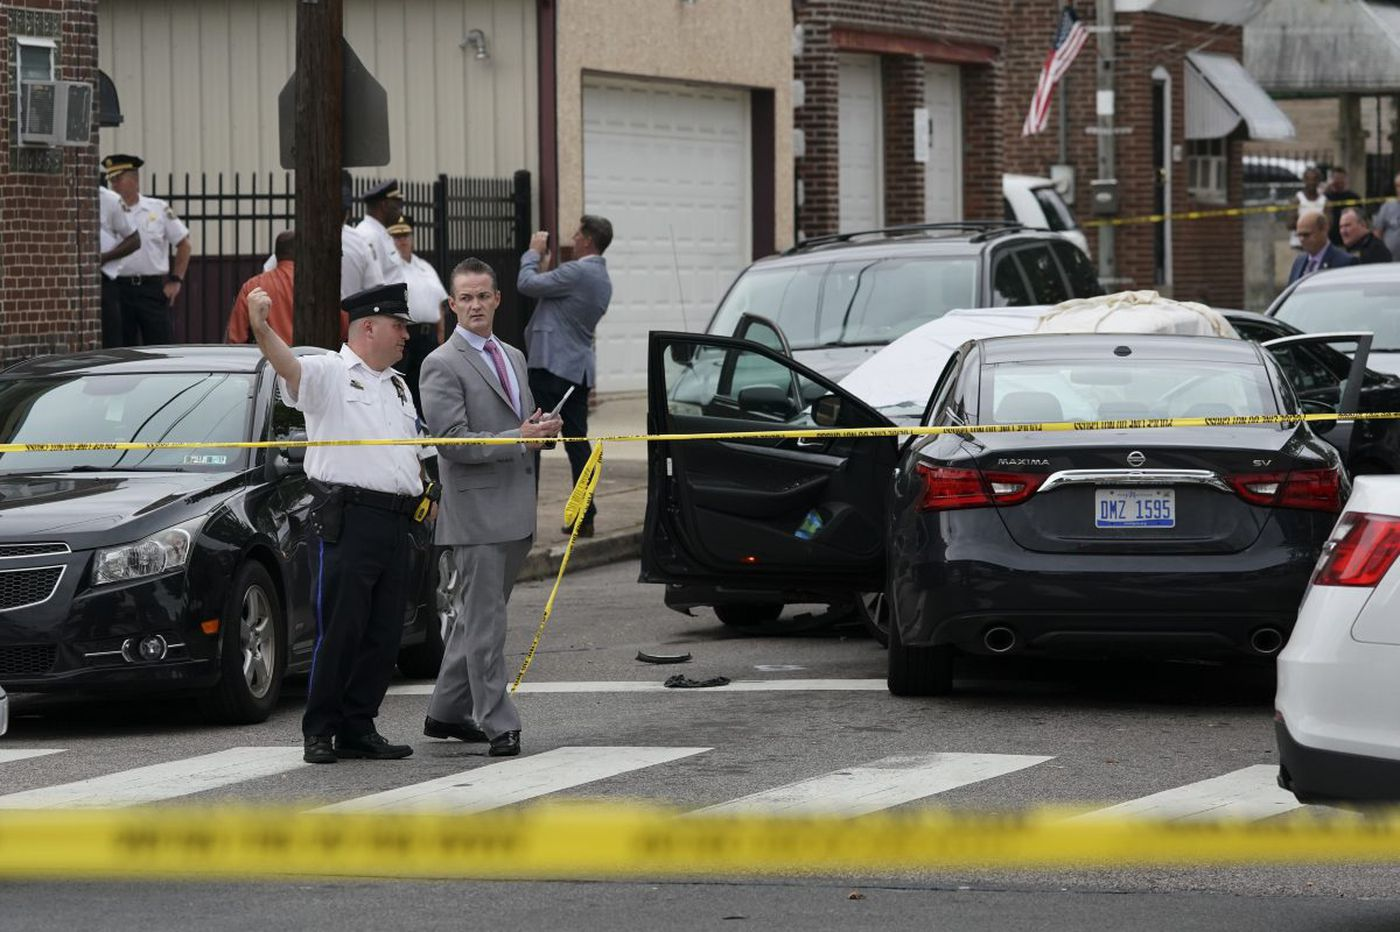 Philly cop, cleared in fatal August shooting, shot someone else in 2012, records show